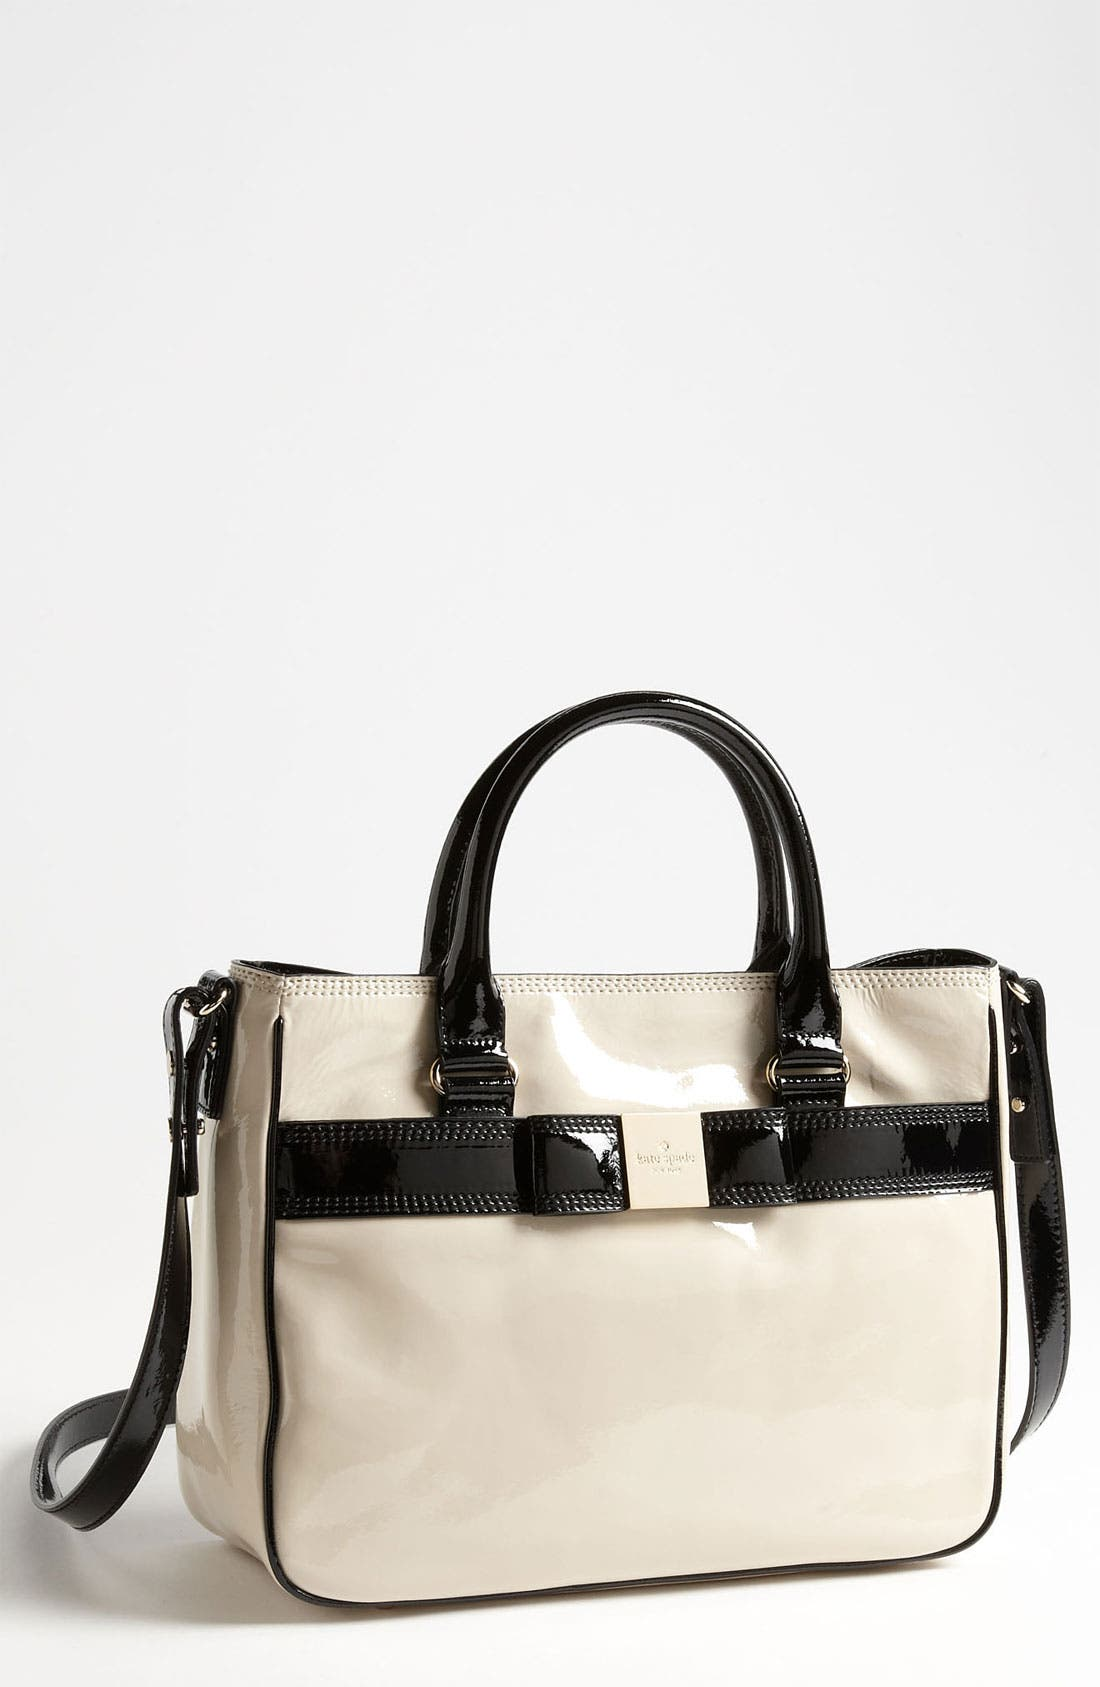 Alternate Image 1 Selected - kate spade new york 'primrose hill - goldie' handbag